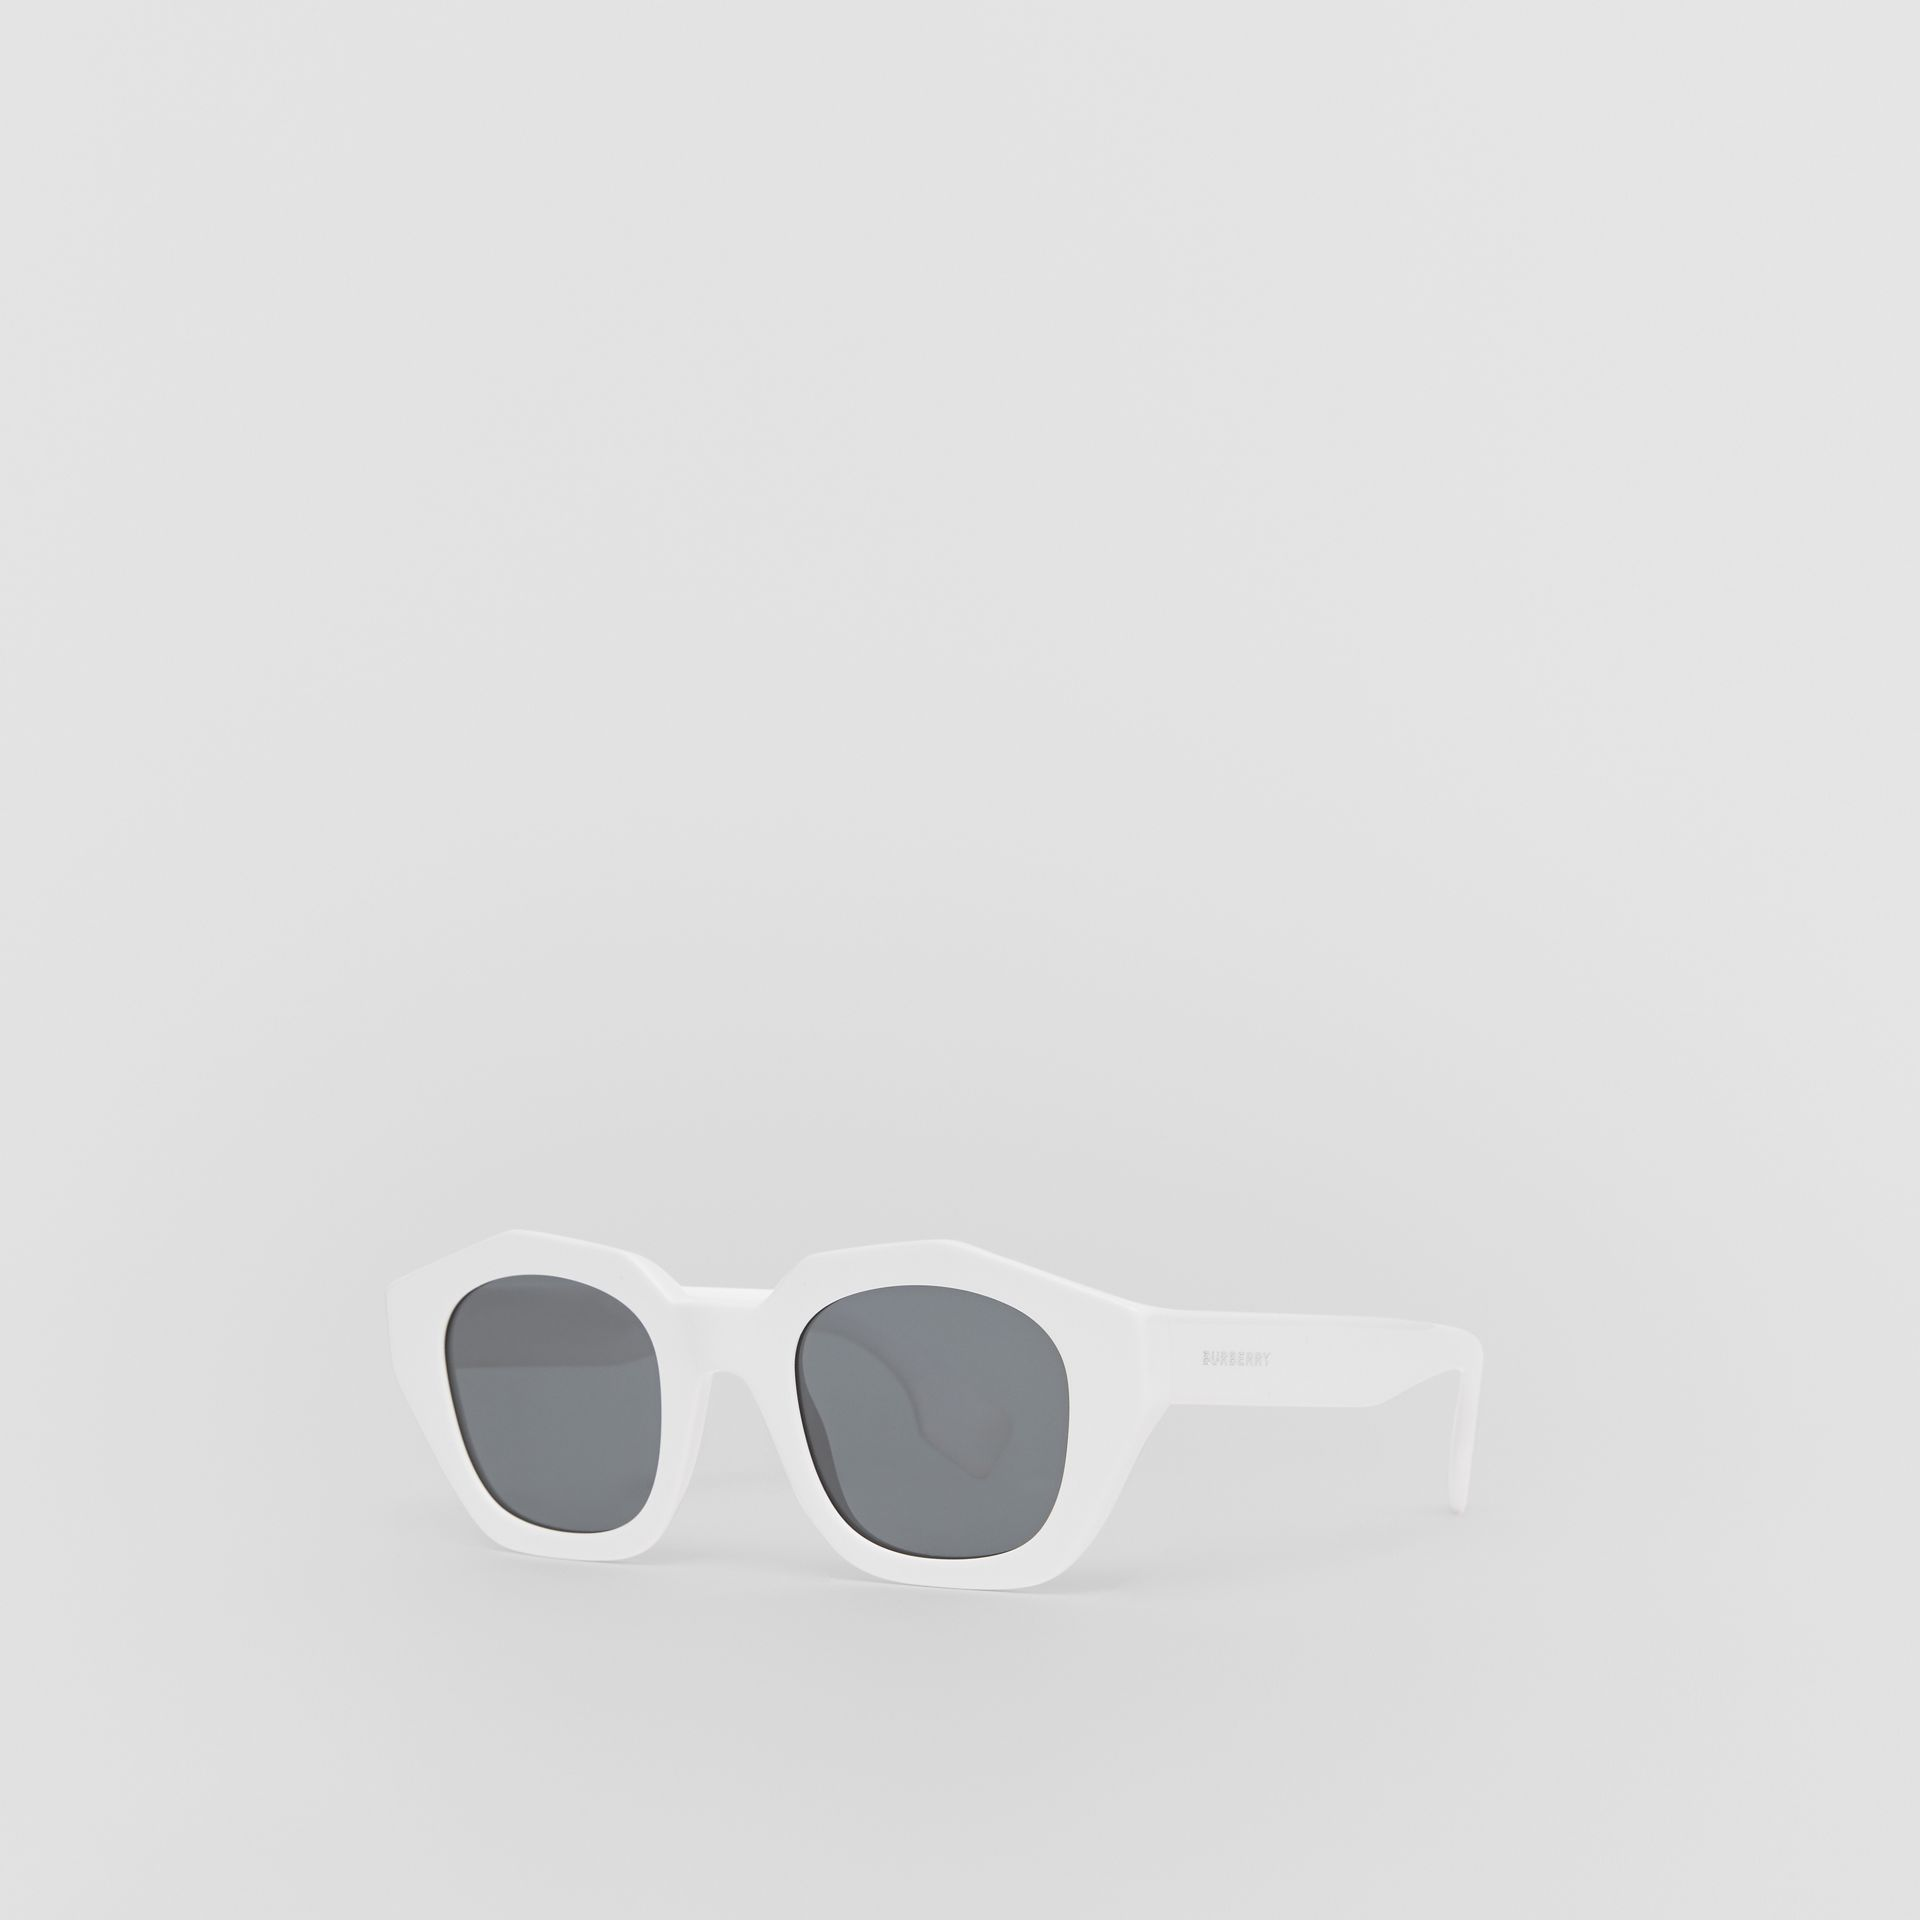 Geometric Frame Sunglasses in White - Women | Burberry - gallery image 5